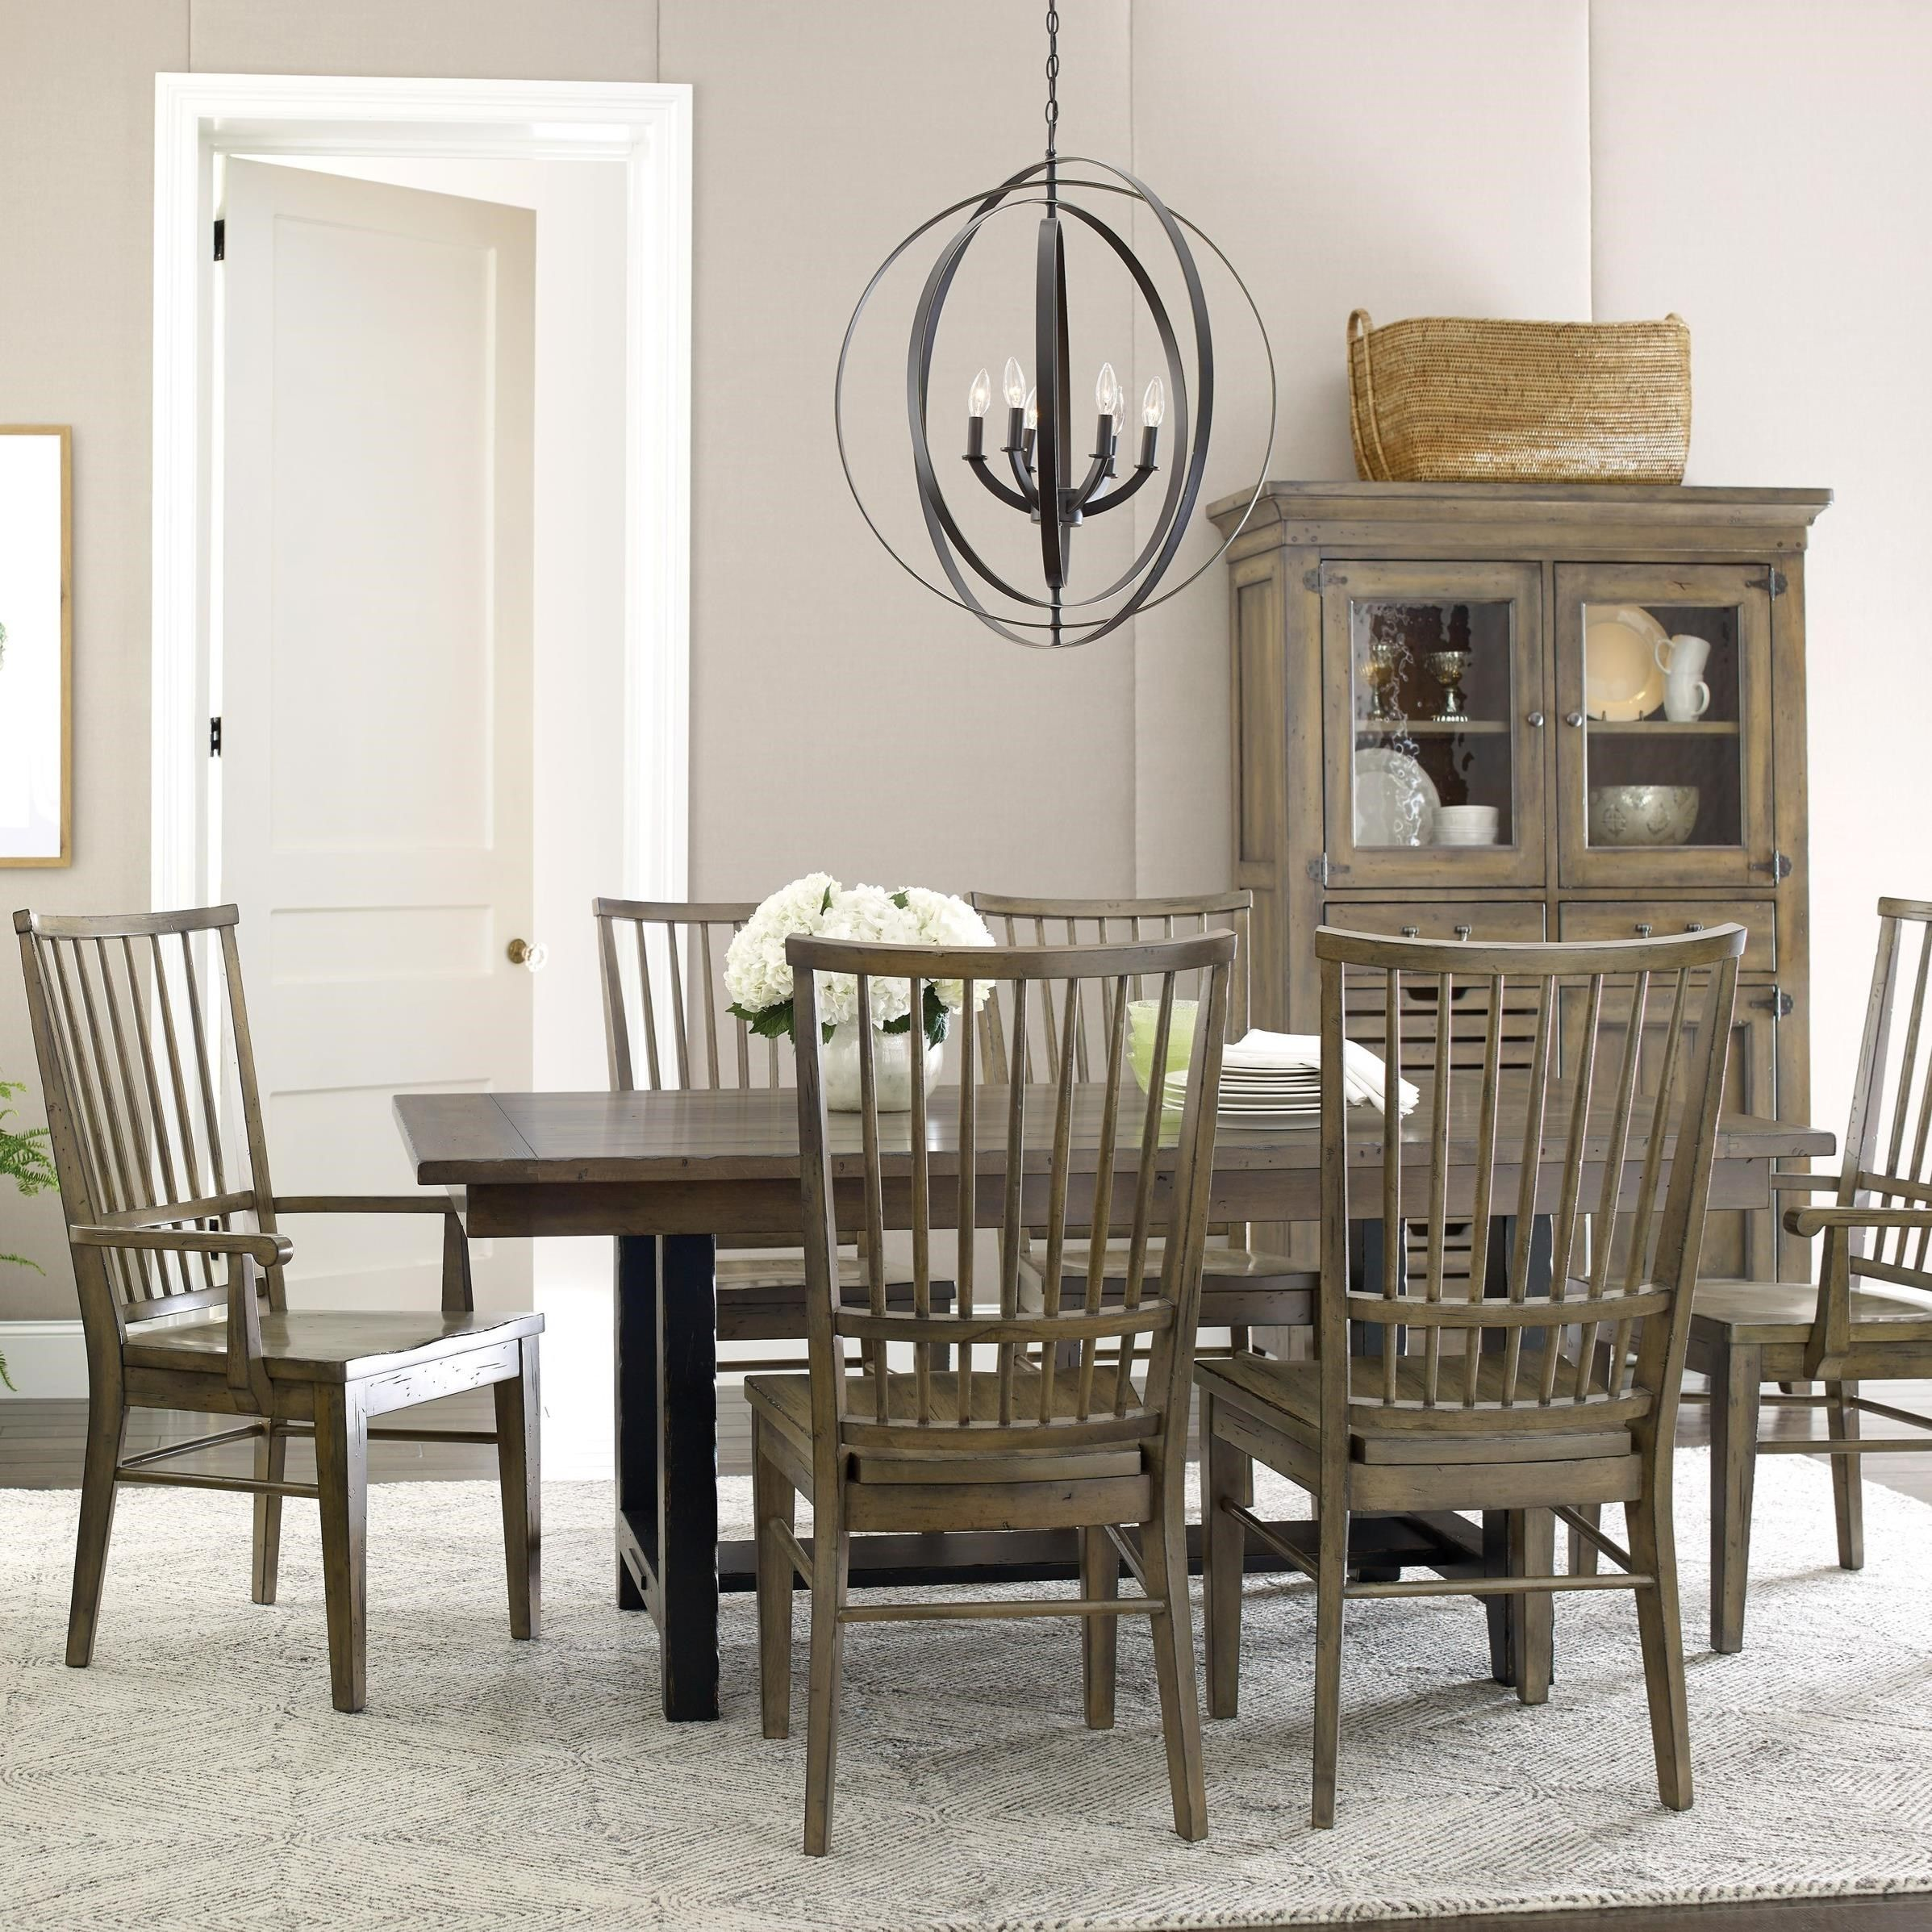 Mill House Dining Table Set With 6 Chairs By Kincaid Furniture In